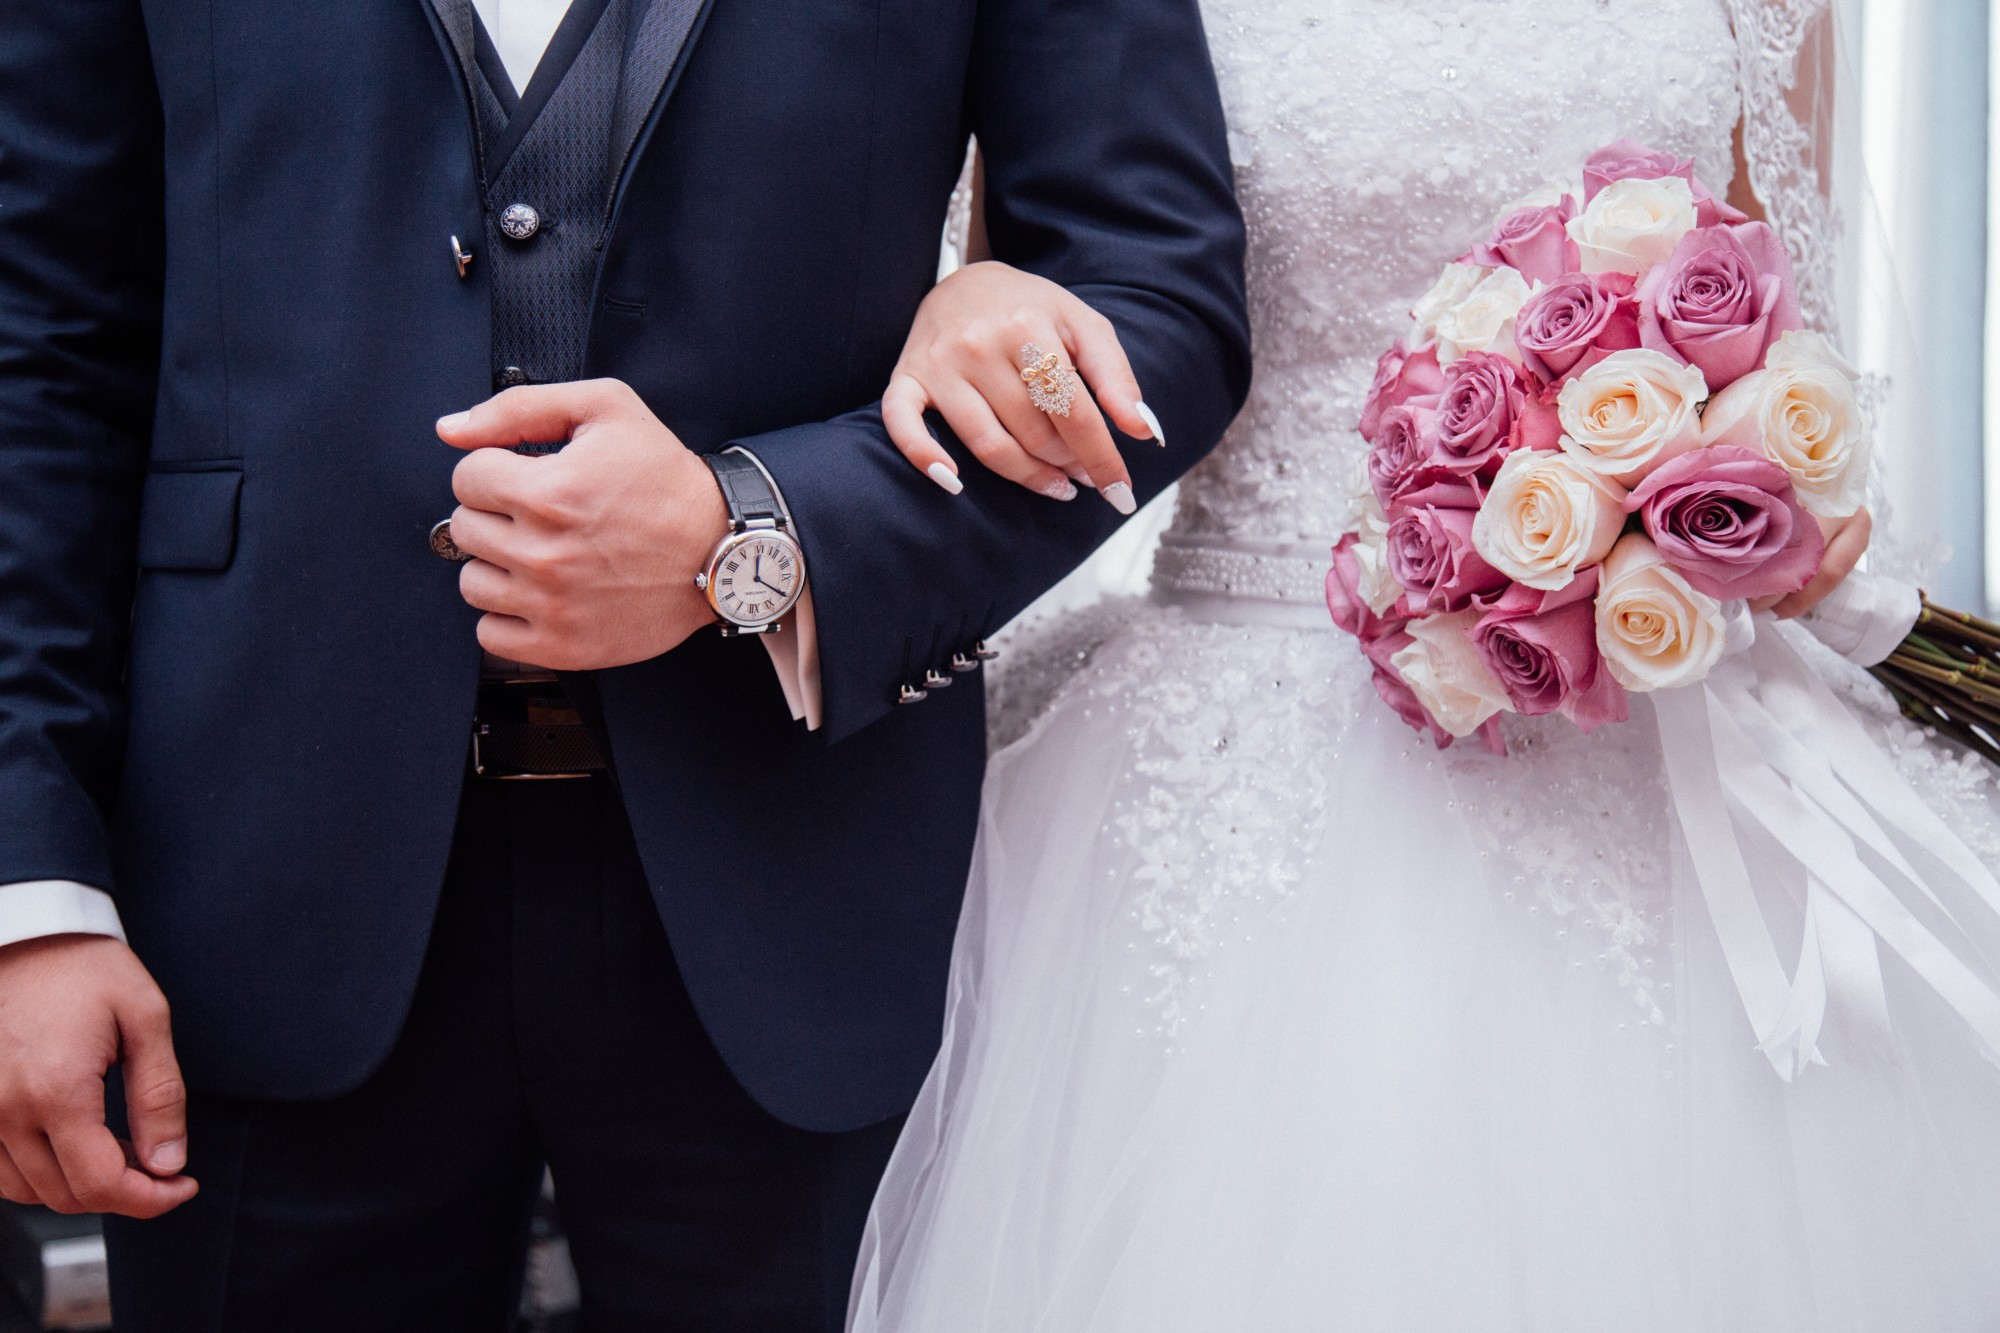 Save Money by Budgeting These 9 Wedding Expenses